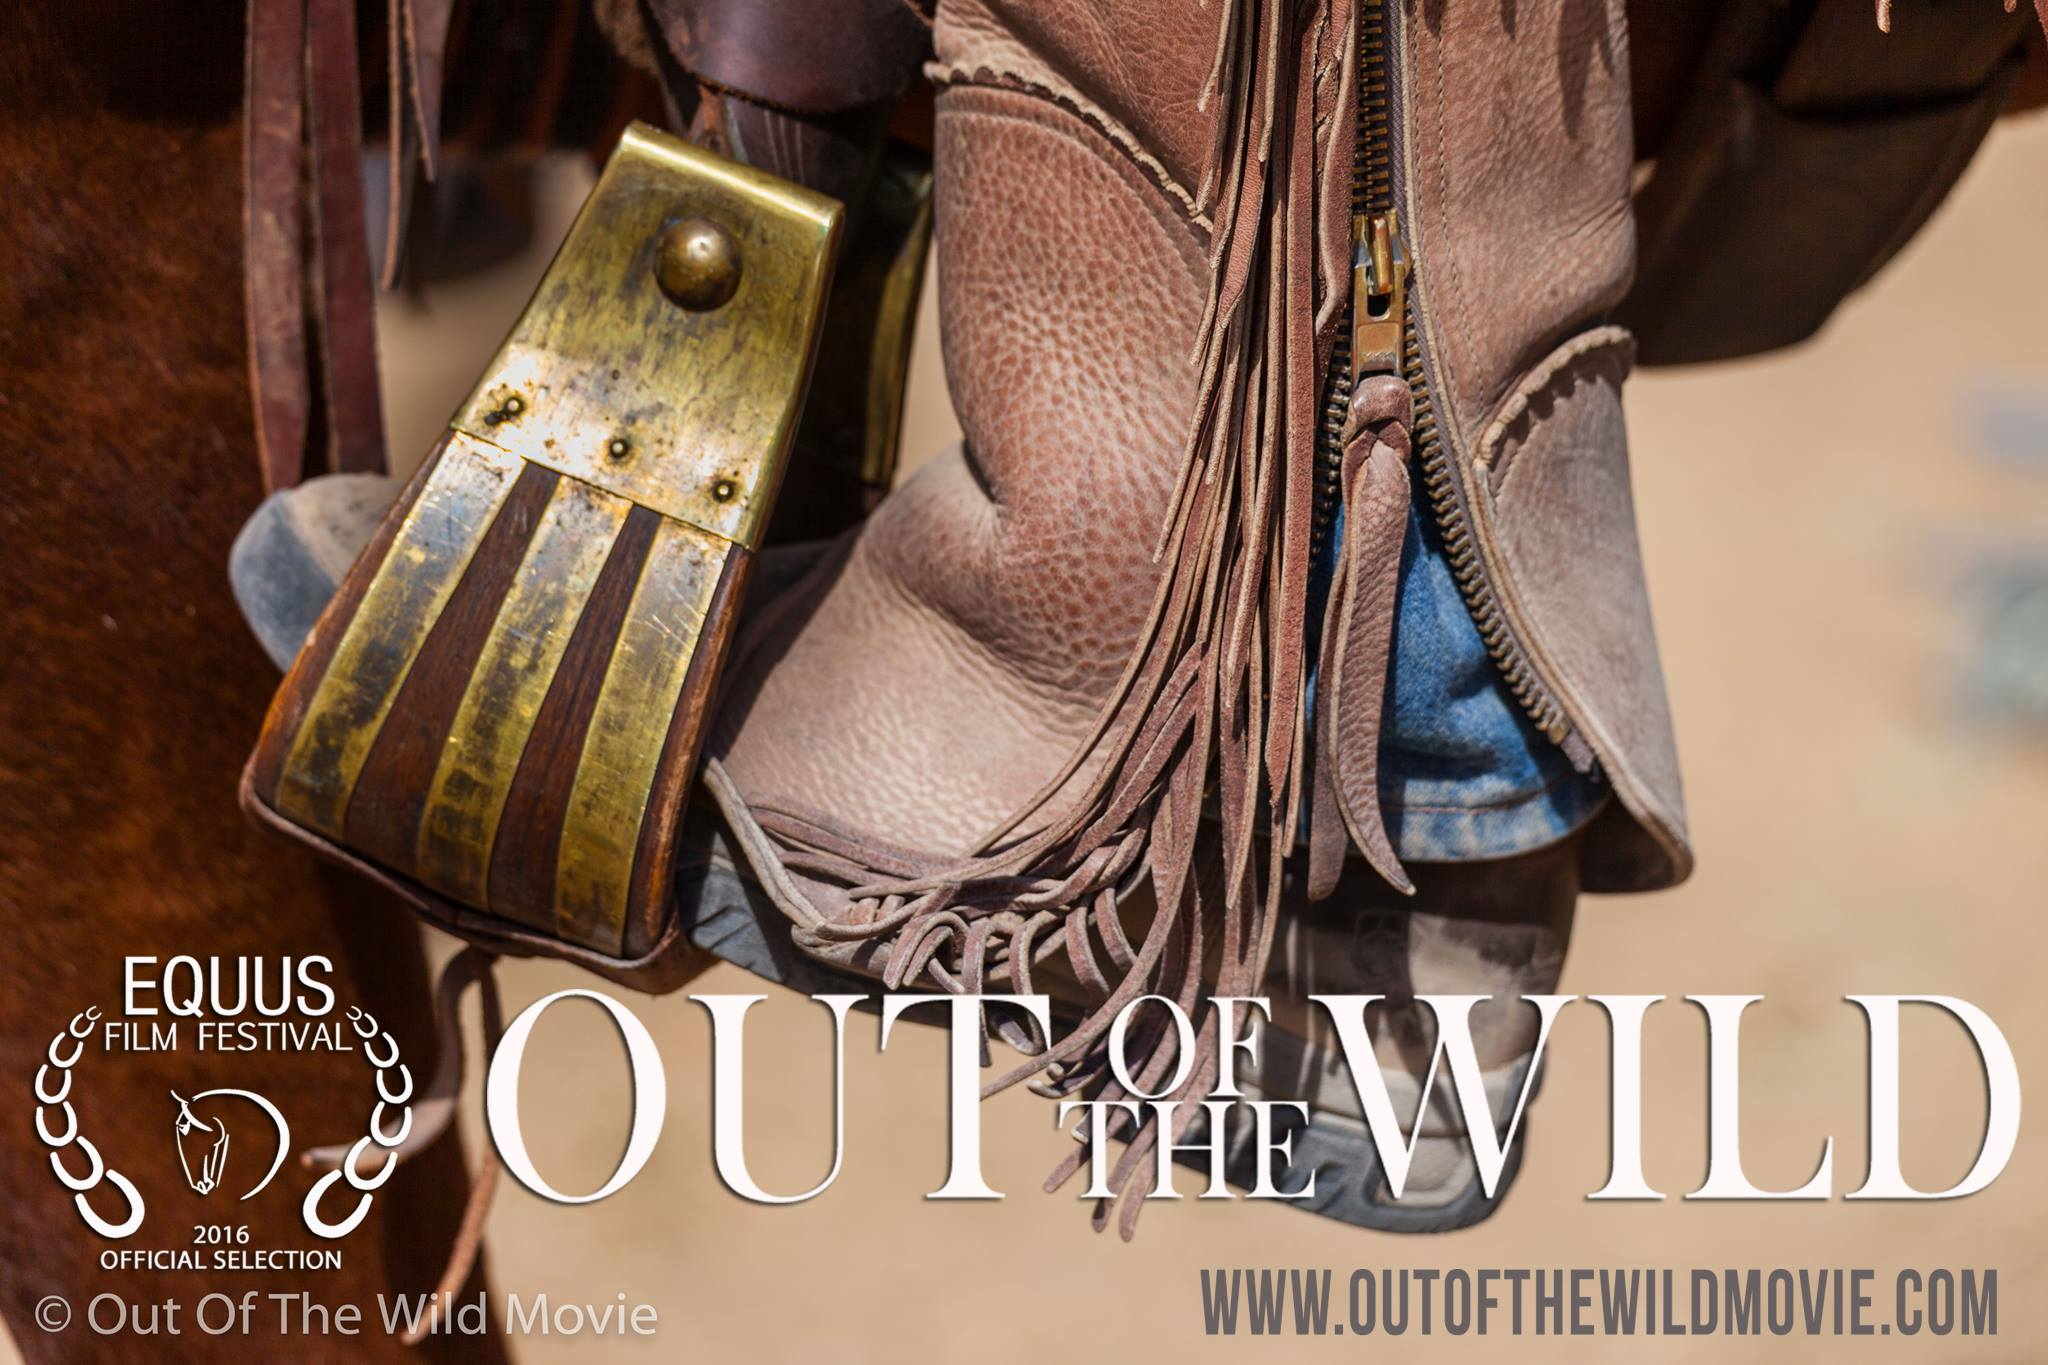 'Out of the Wild' has won a WINNIE award at the prestigious 2016 EQUUS Film festival in NYC.